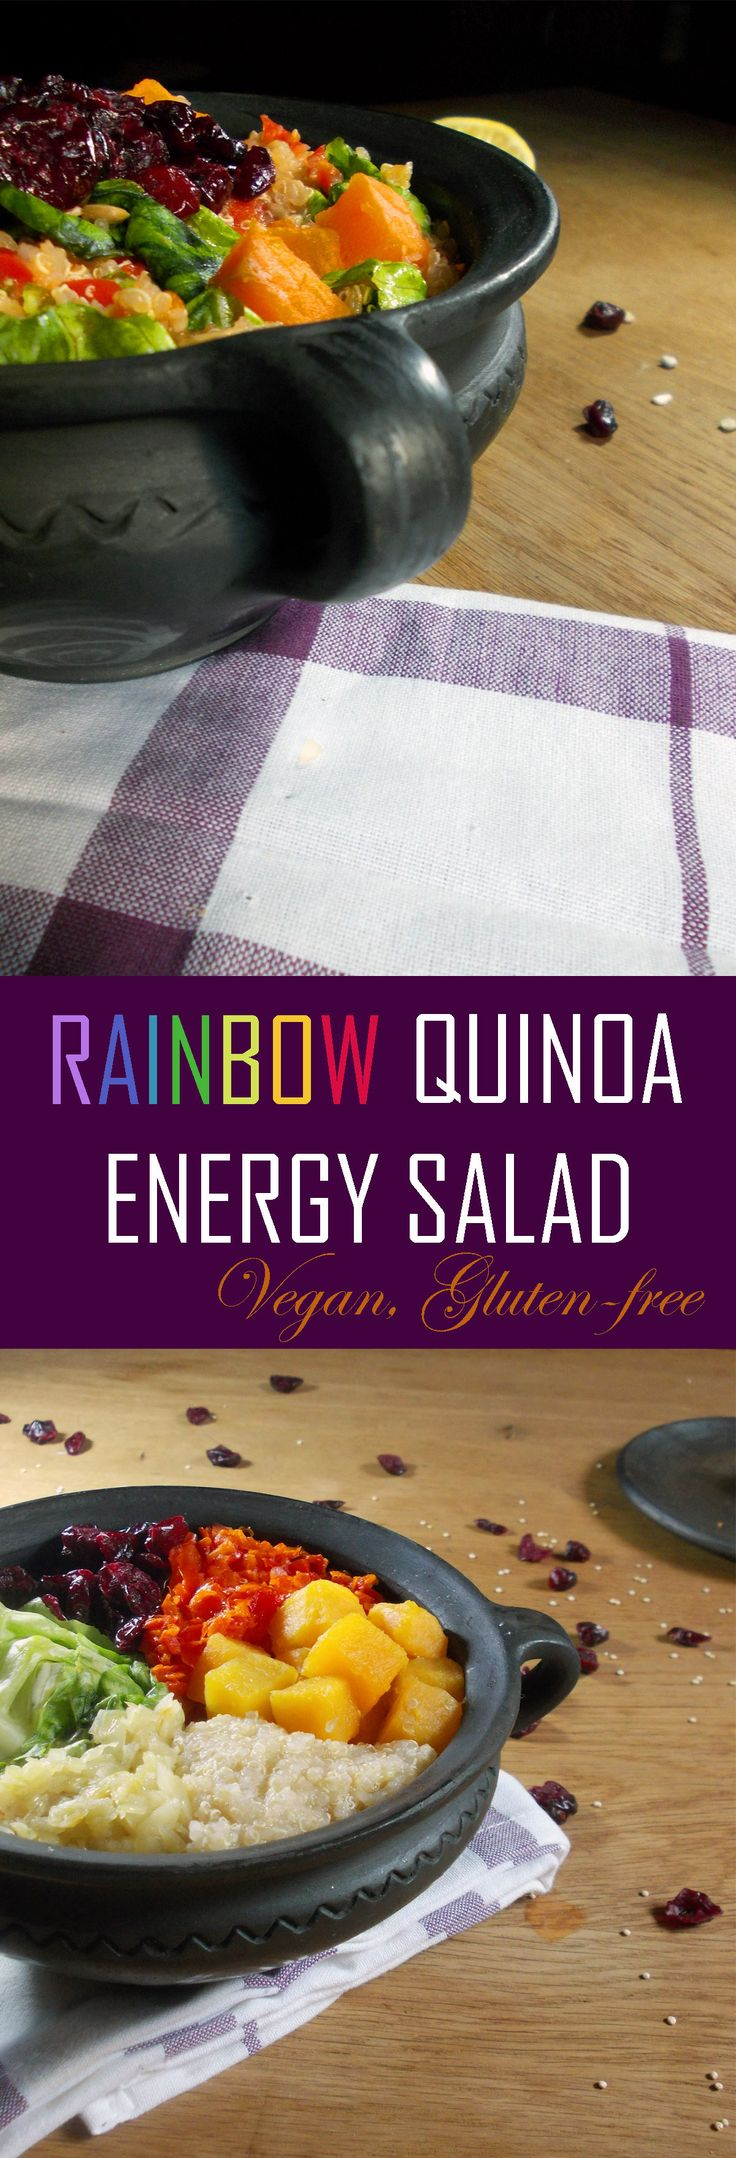 RAINBOW QUINOA ENERGY SALAD -- This dish is filled with proteins and good stuff, excellent for long days out of the house when you need to keep your stomach full, and your energies and spirits up!